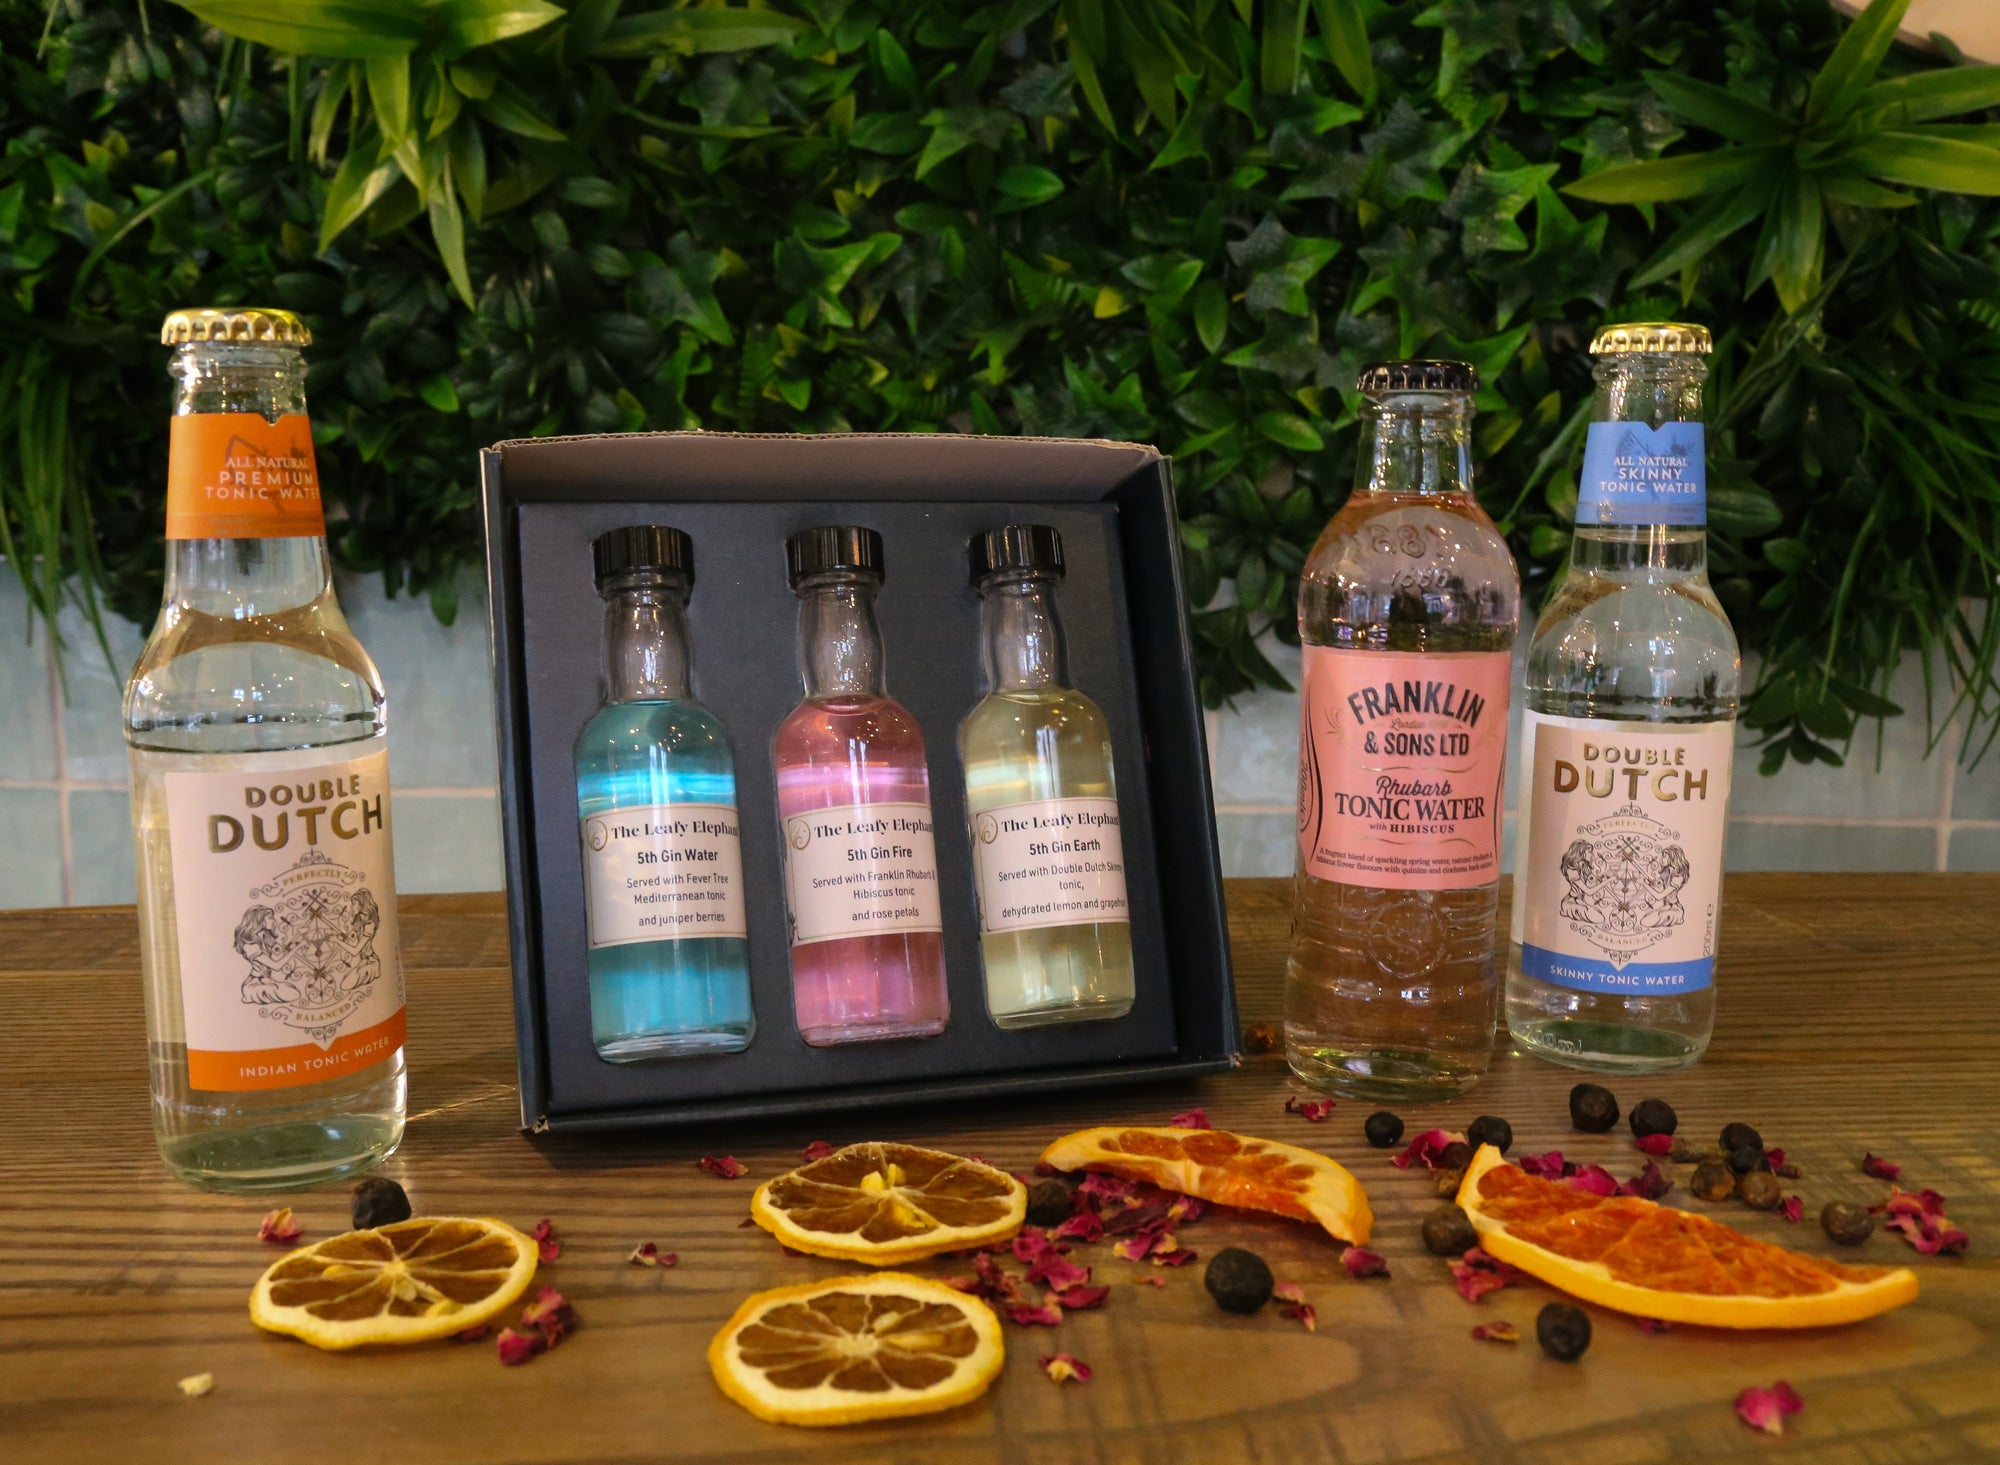 5th elements gin tasting experience for one